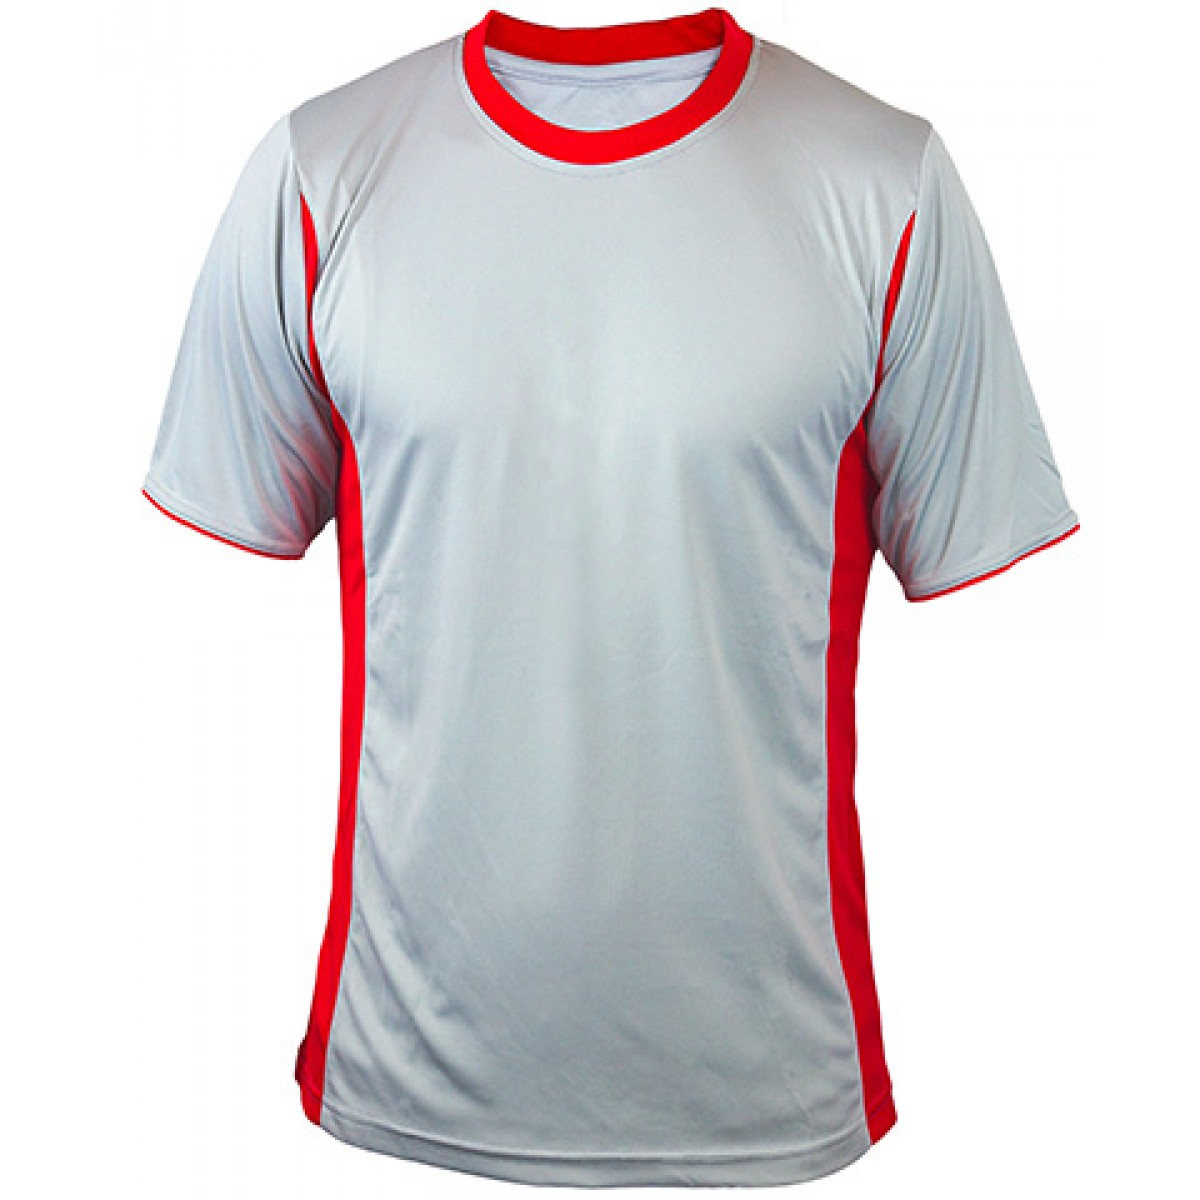 Gray Short Sleeves Performance With Red Side Insert-Gray/Red-2XL